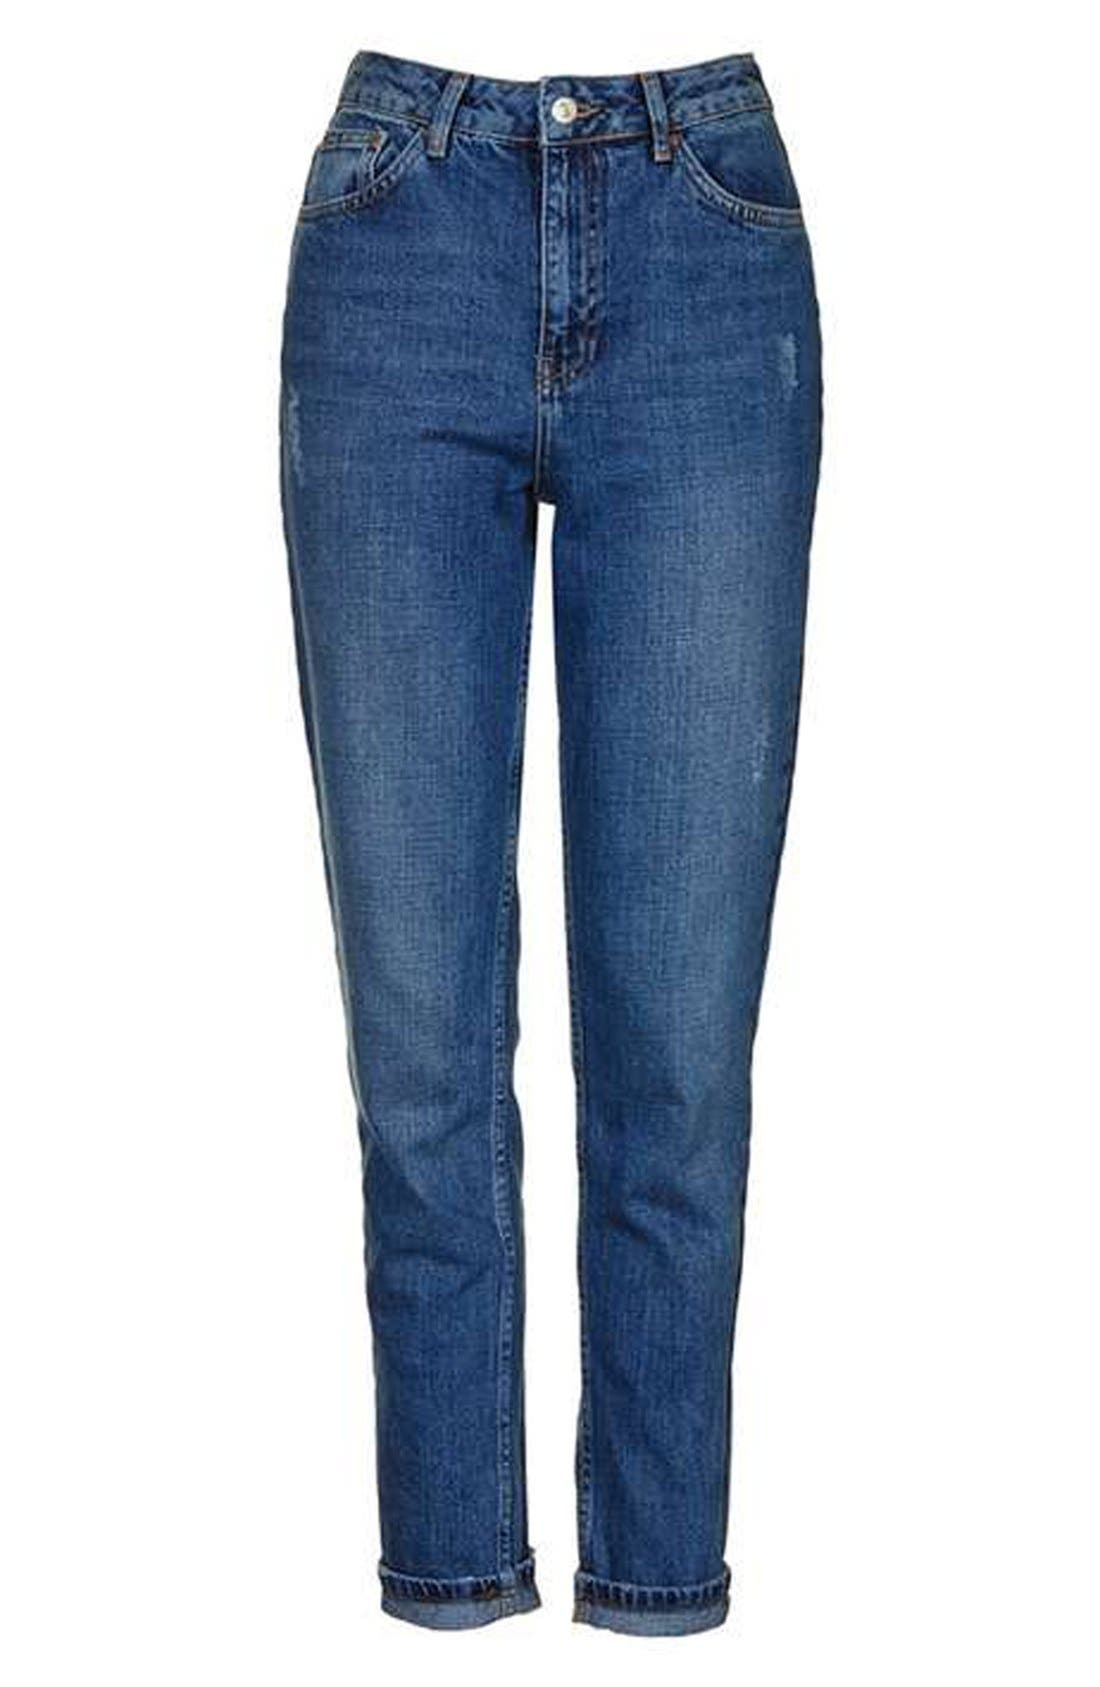 TOPSHOP, 'Mom' High Rise Jeans, Alternate thumbnail 4, color, 400